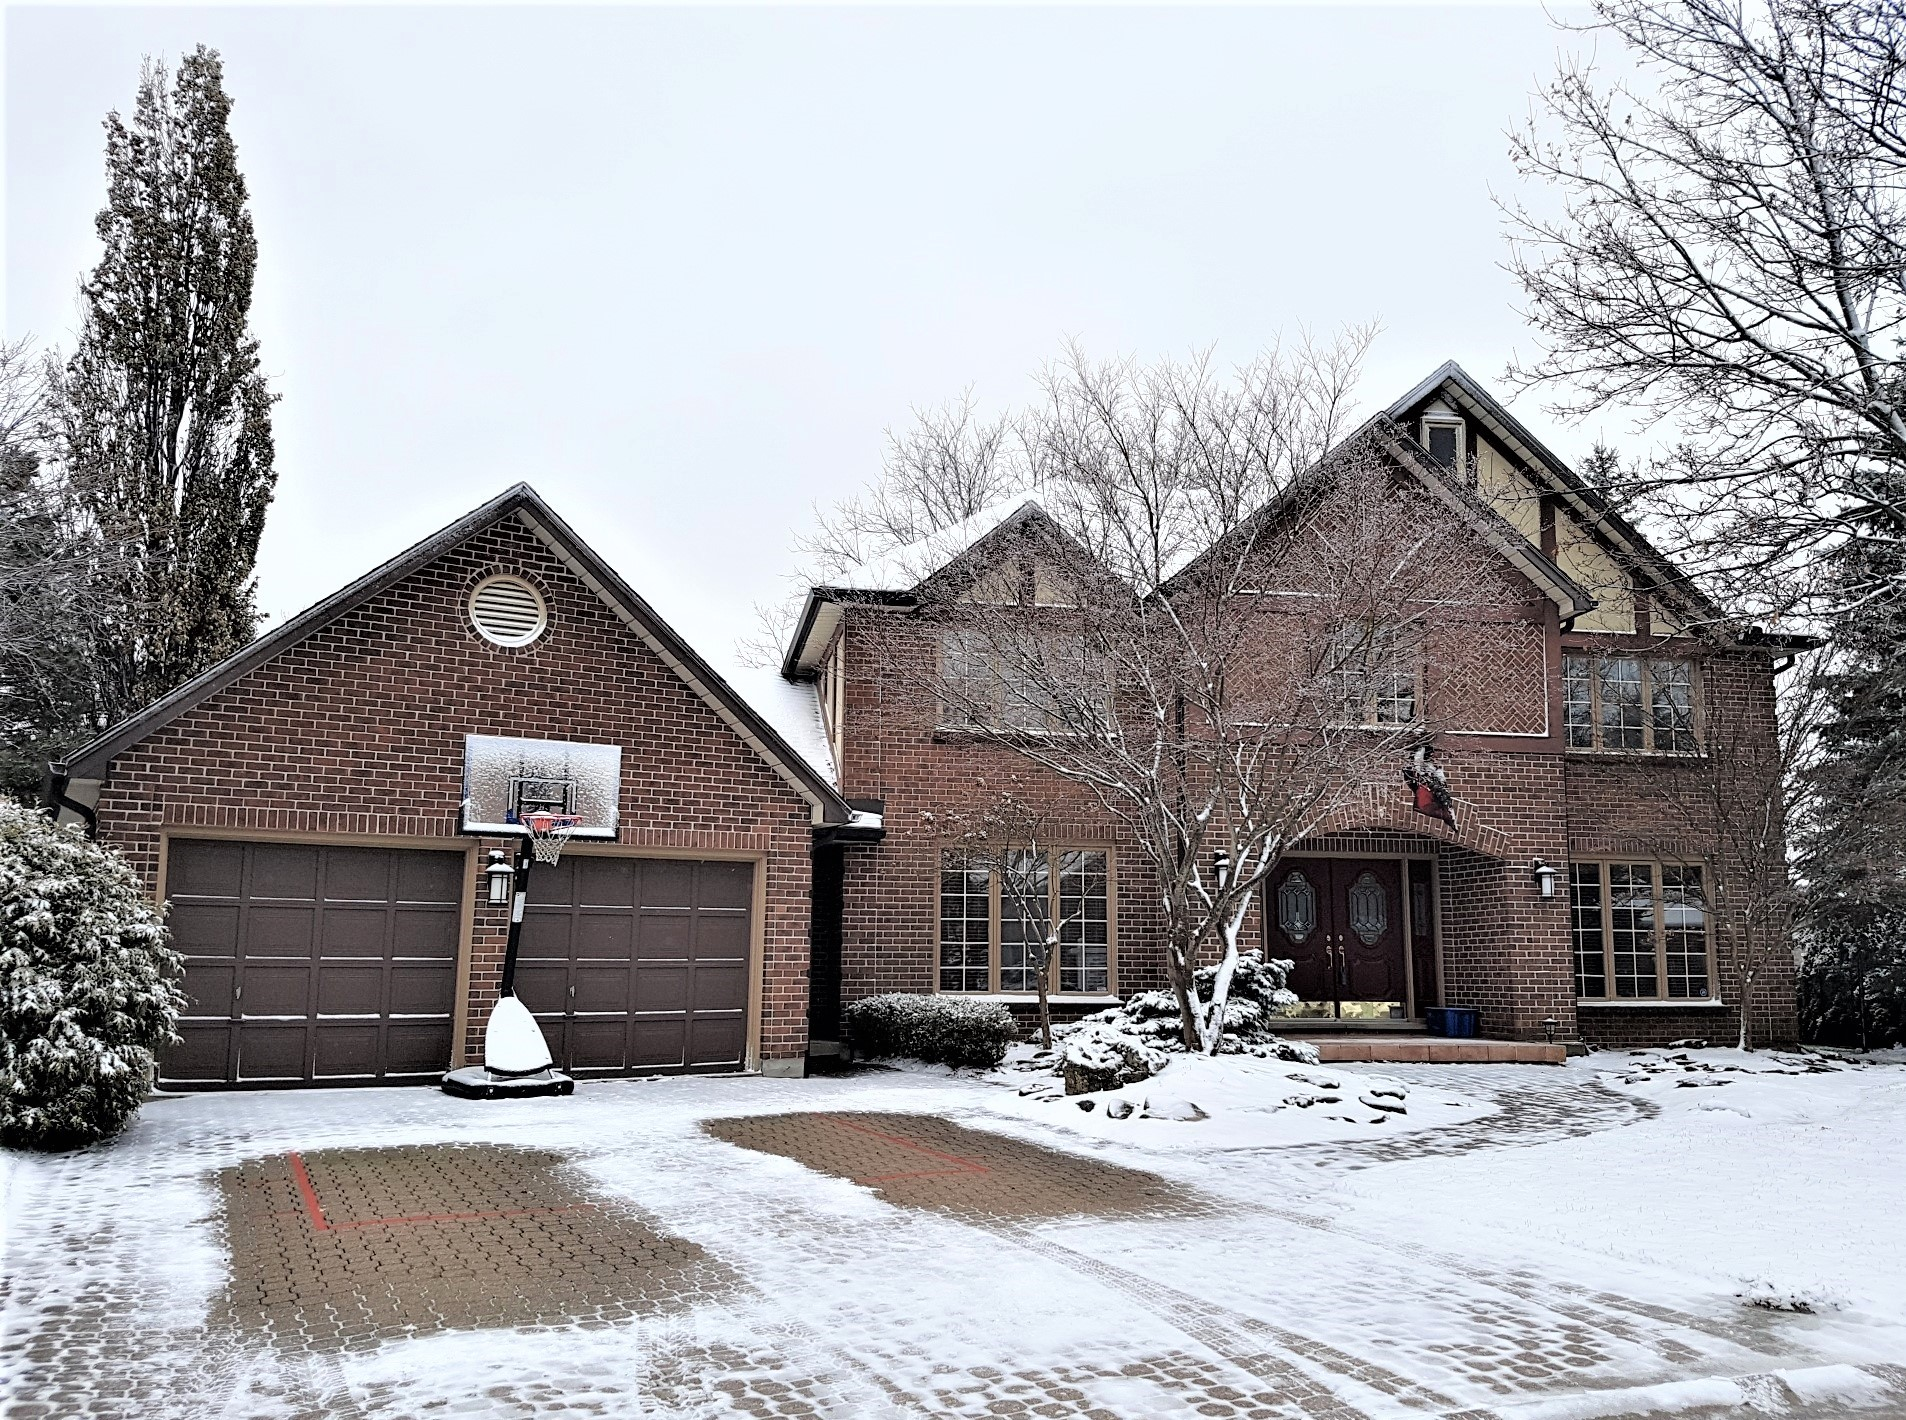 <h3>$799,900</h3><p>141 Whiteacres Court, London, Ontario</p>